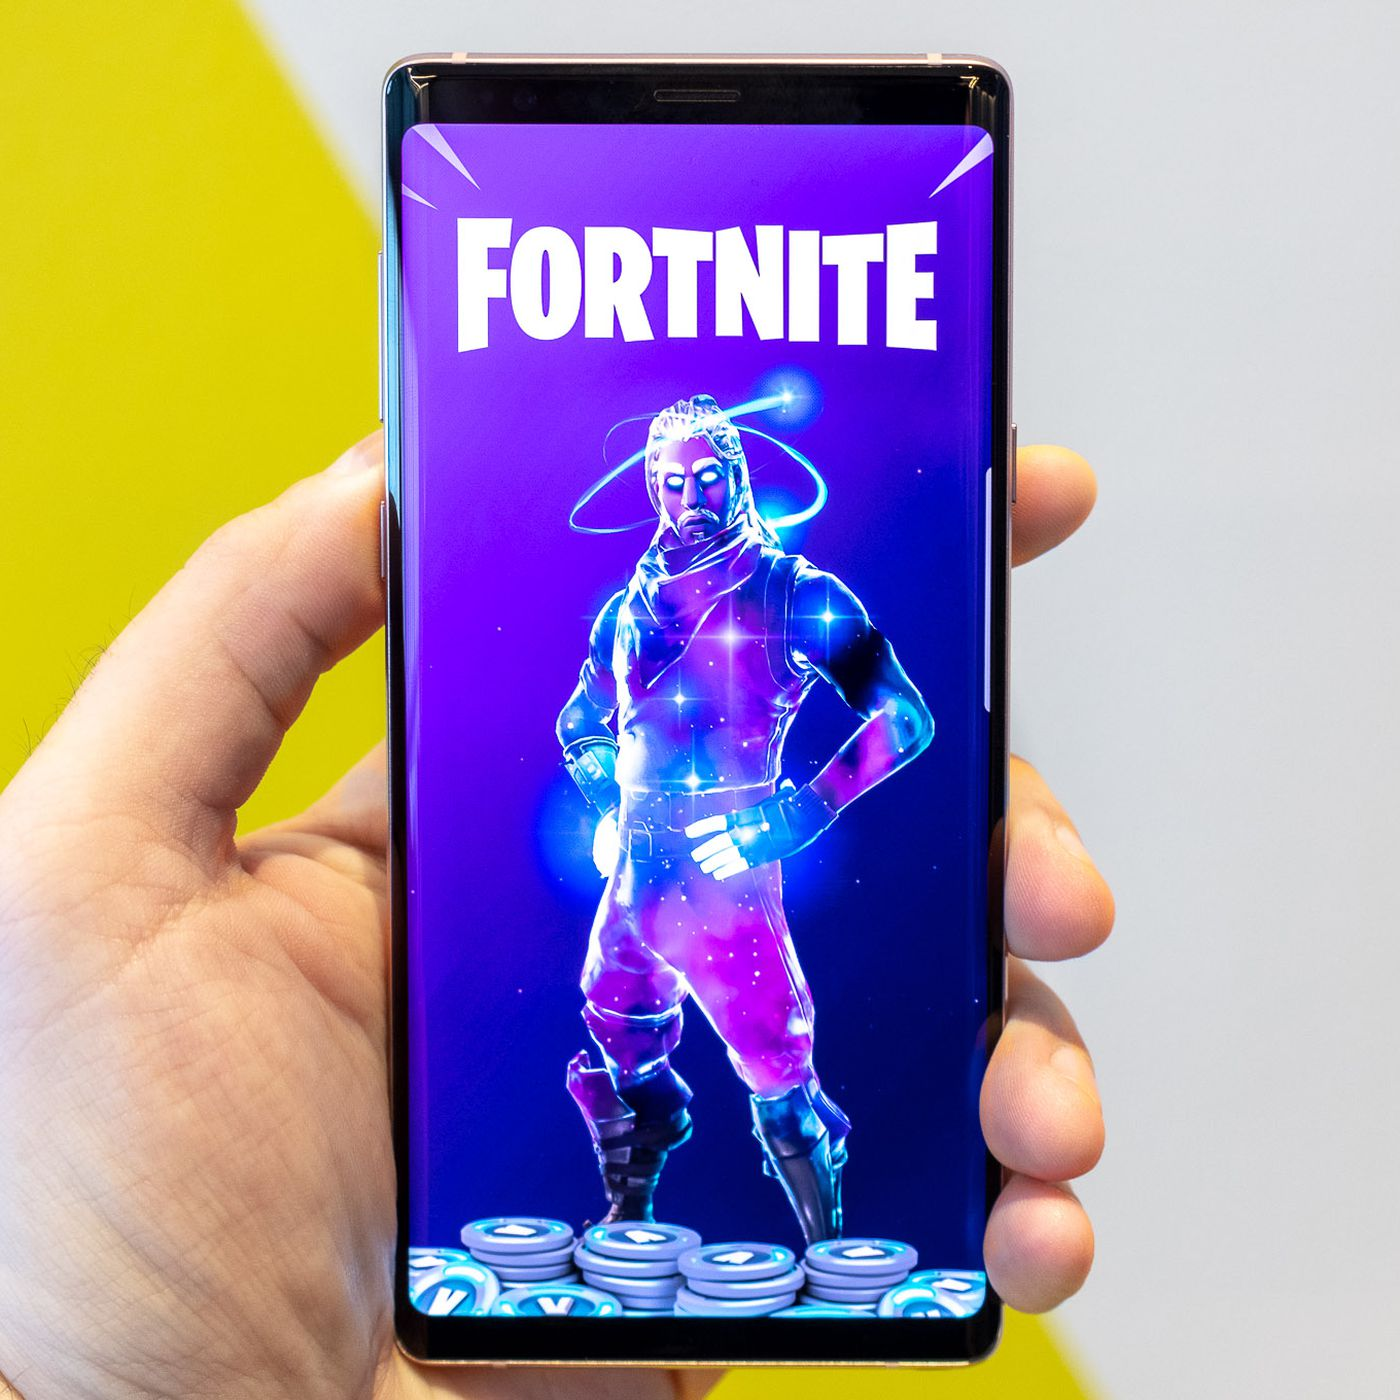 Fortnite for Android is launching today exclusively on